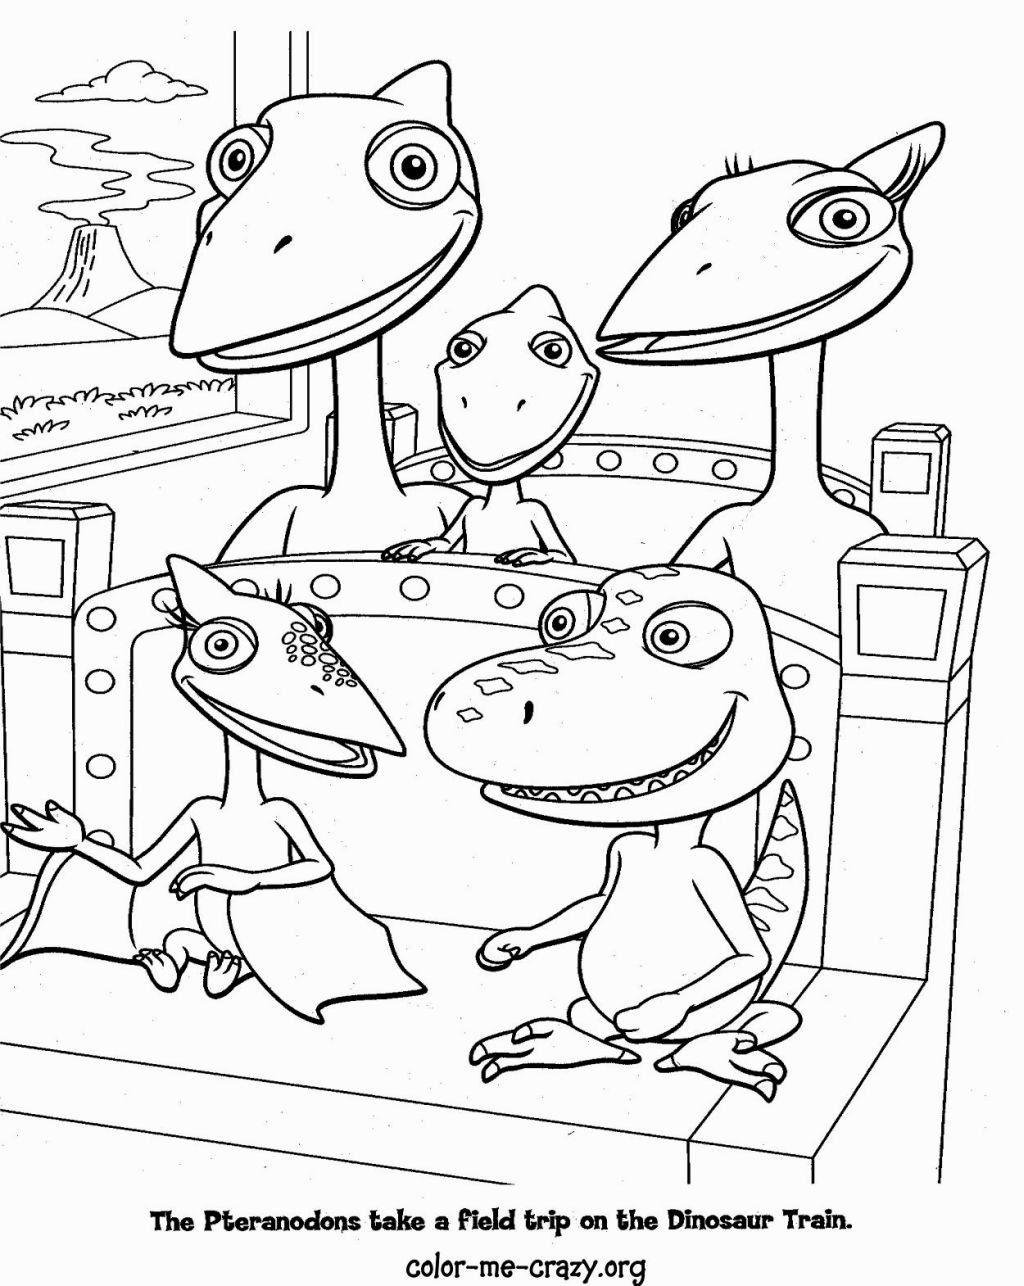 dinosaur train coloring pages coloring pages train coloring pages dinosaur coloring pages. Black Bedroom Furniture Sets. Home Design Ideas